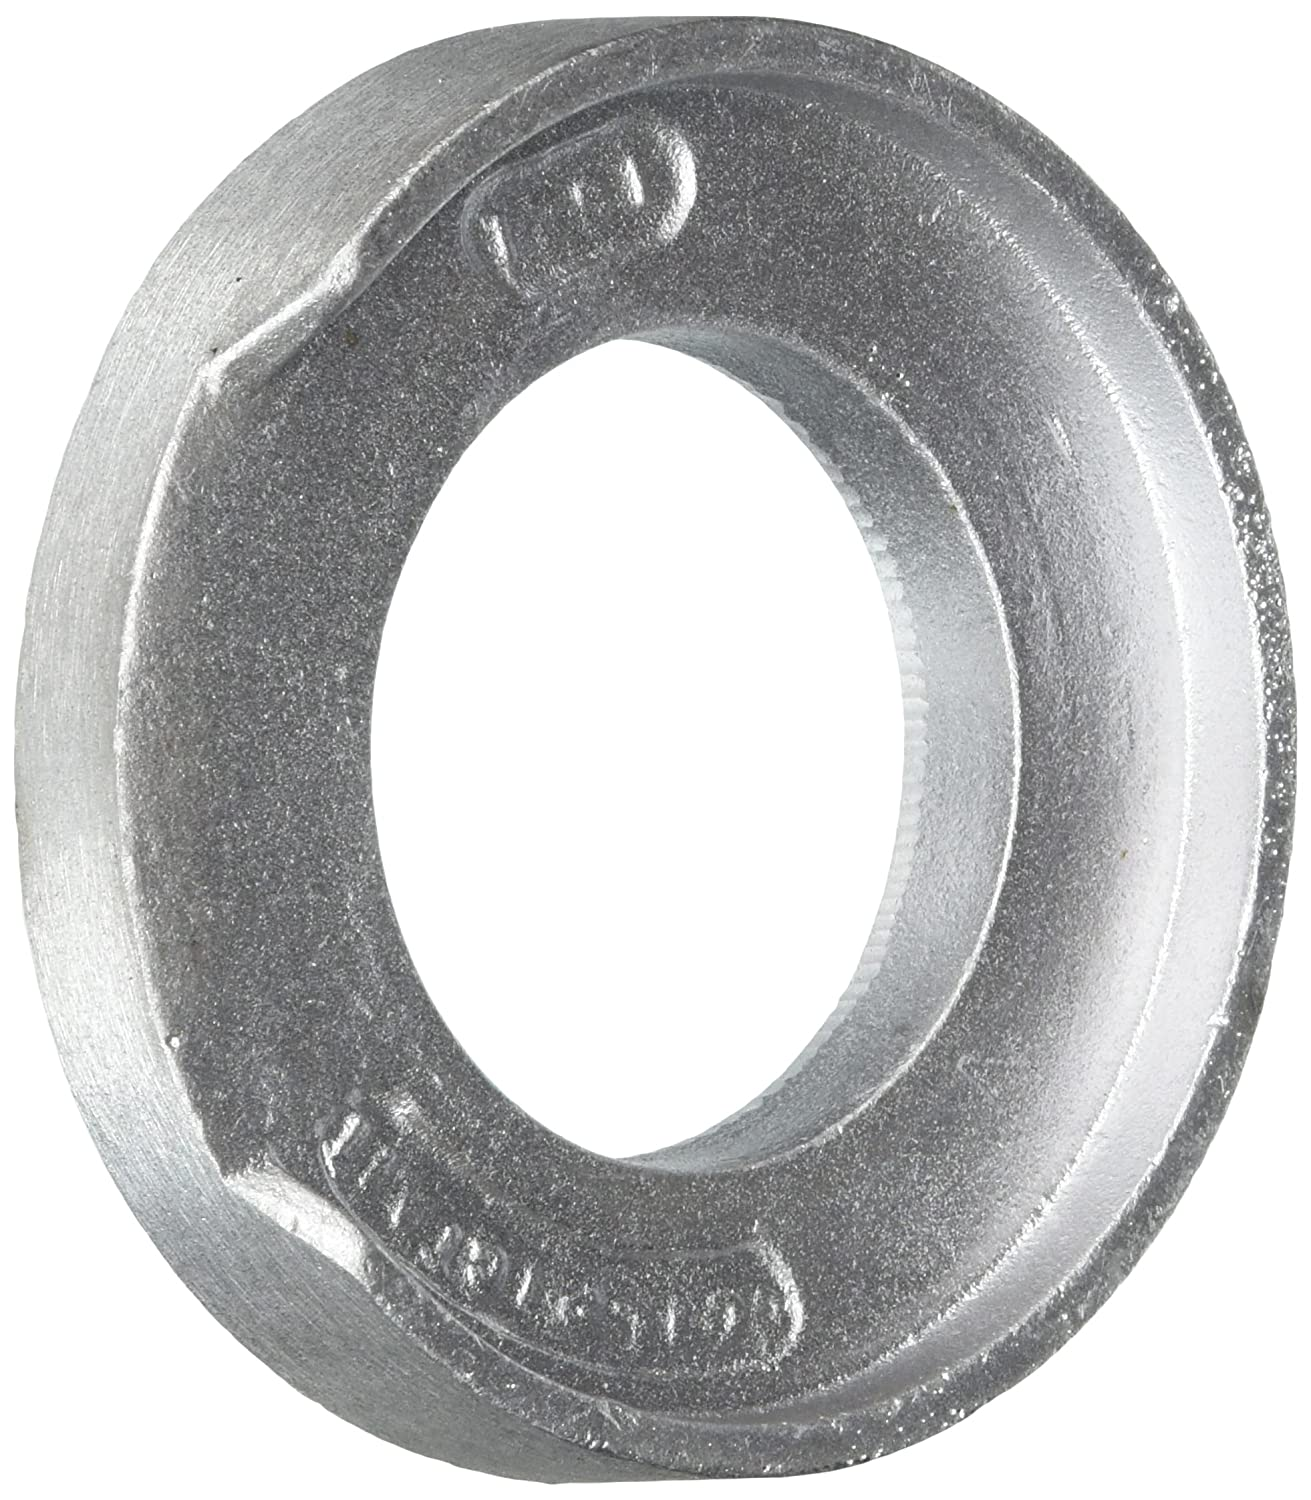 Specialty Products Company 1621 1//2 Rear Coil Spring Spacer